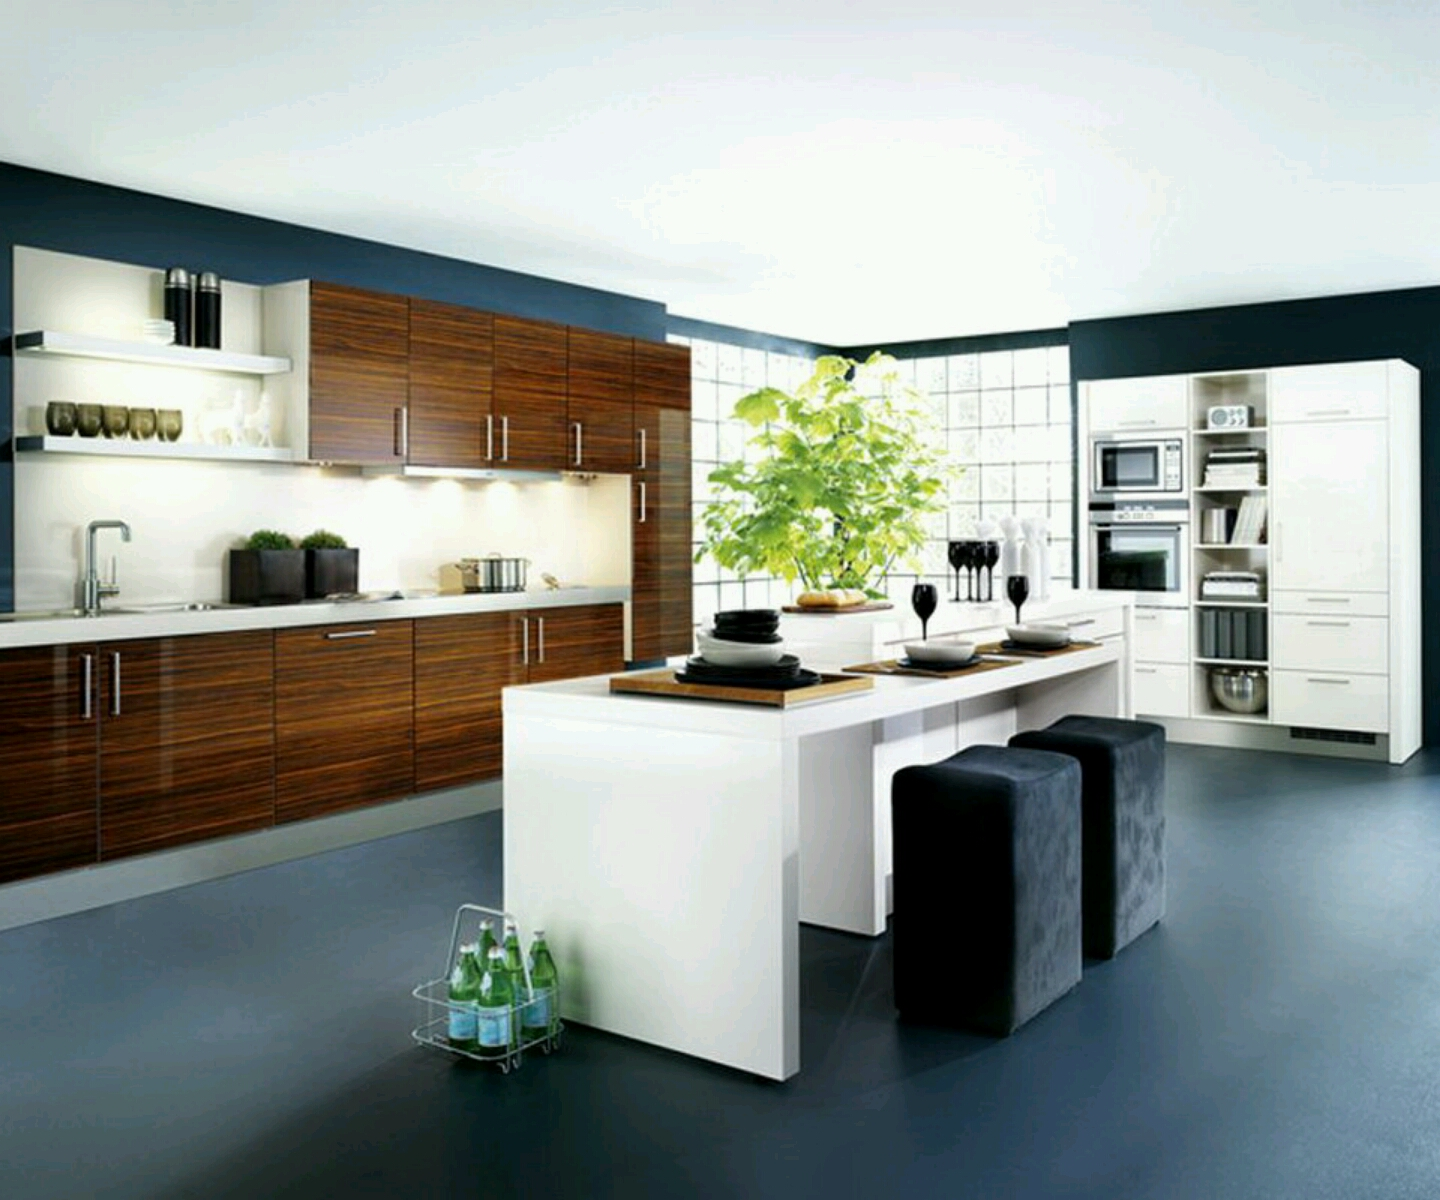 New home designs latest kitchen cabinets designs modern for Modern kitchen cabinets